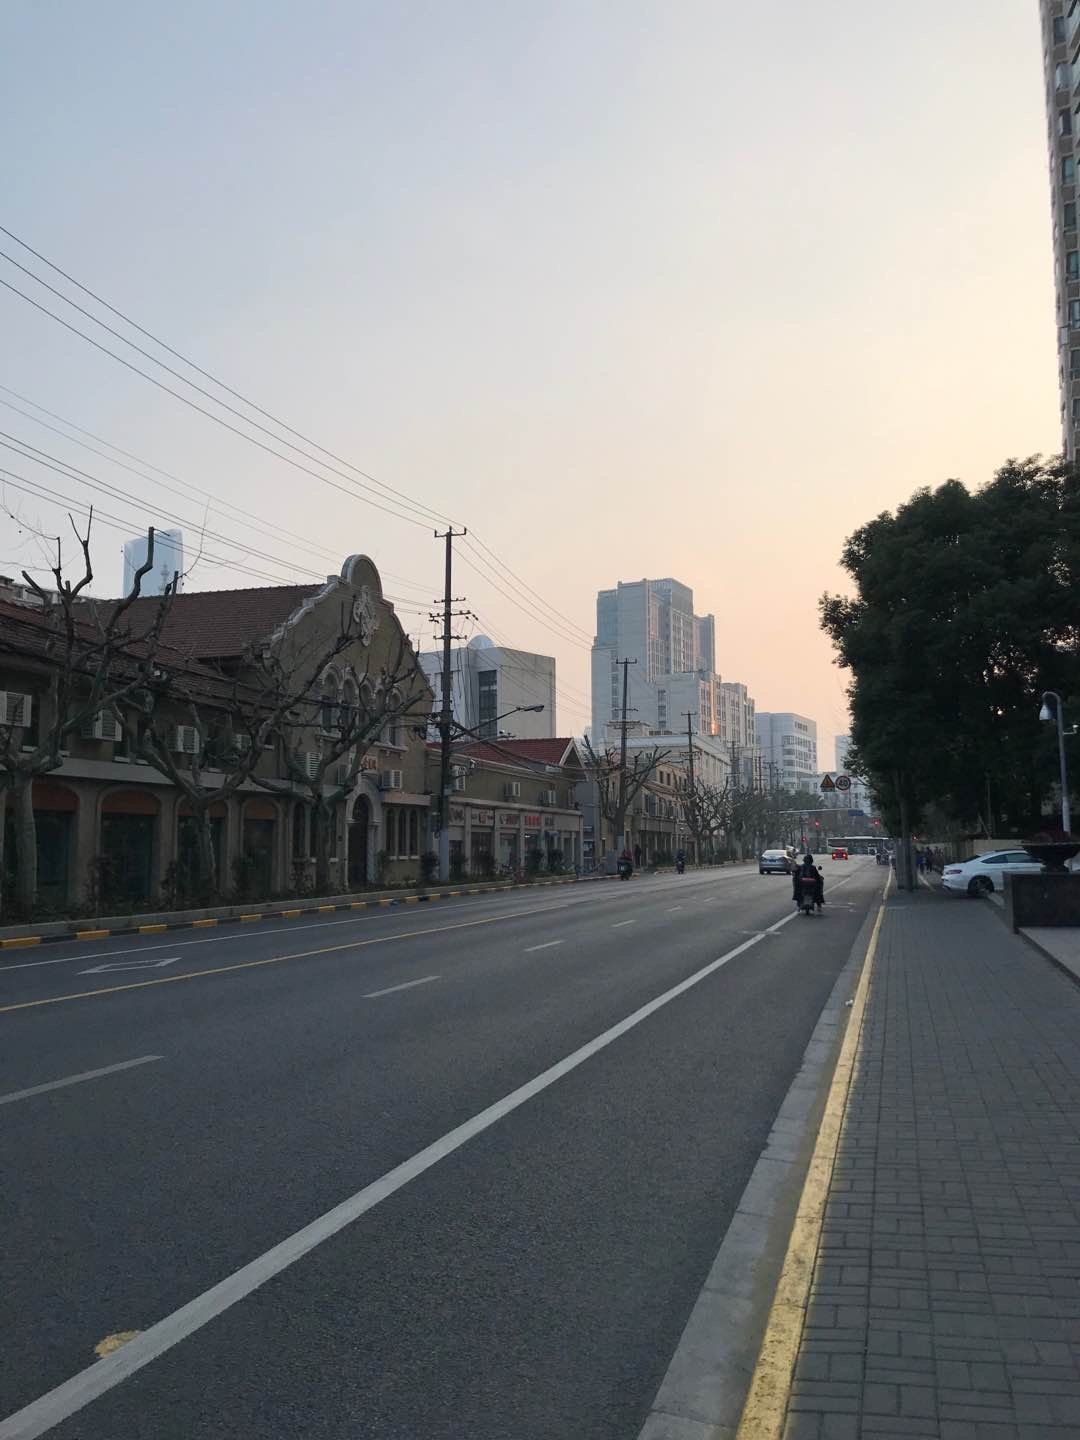 What did you see on your run today? #393 comes from the deserted streets of Shanghai